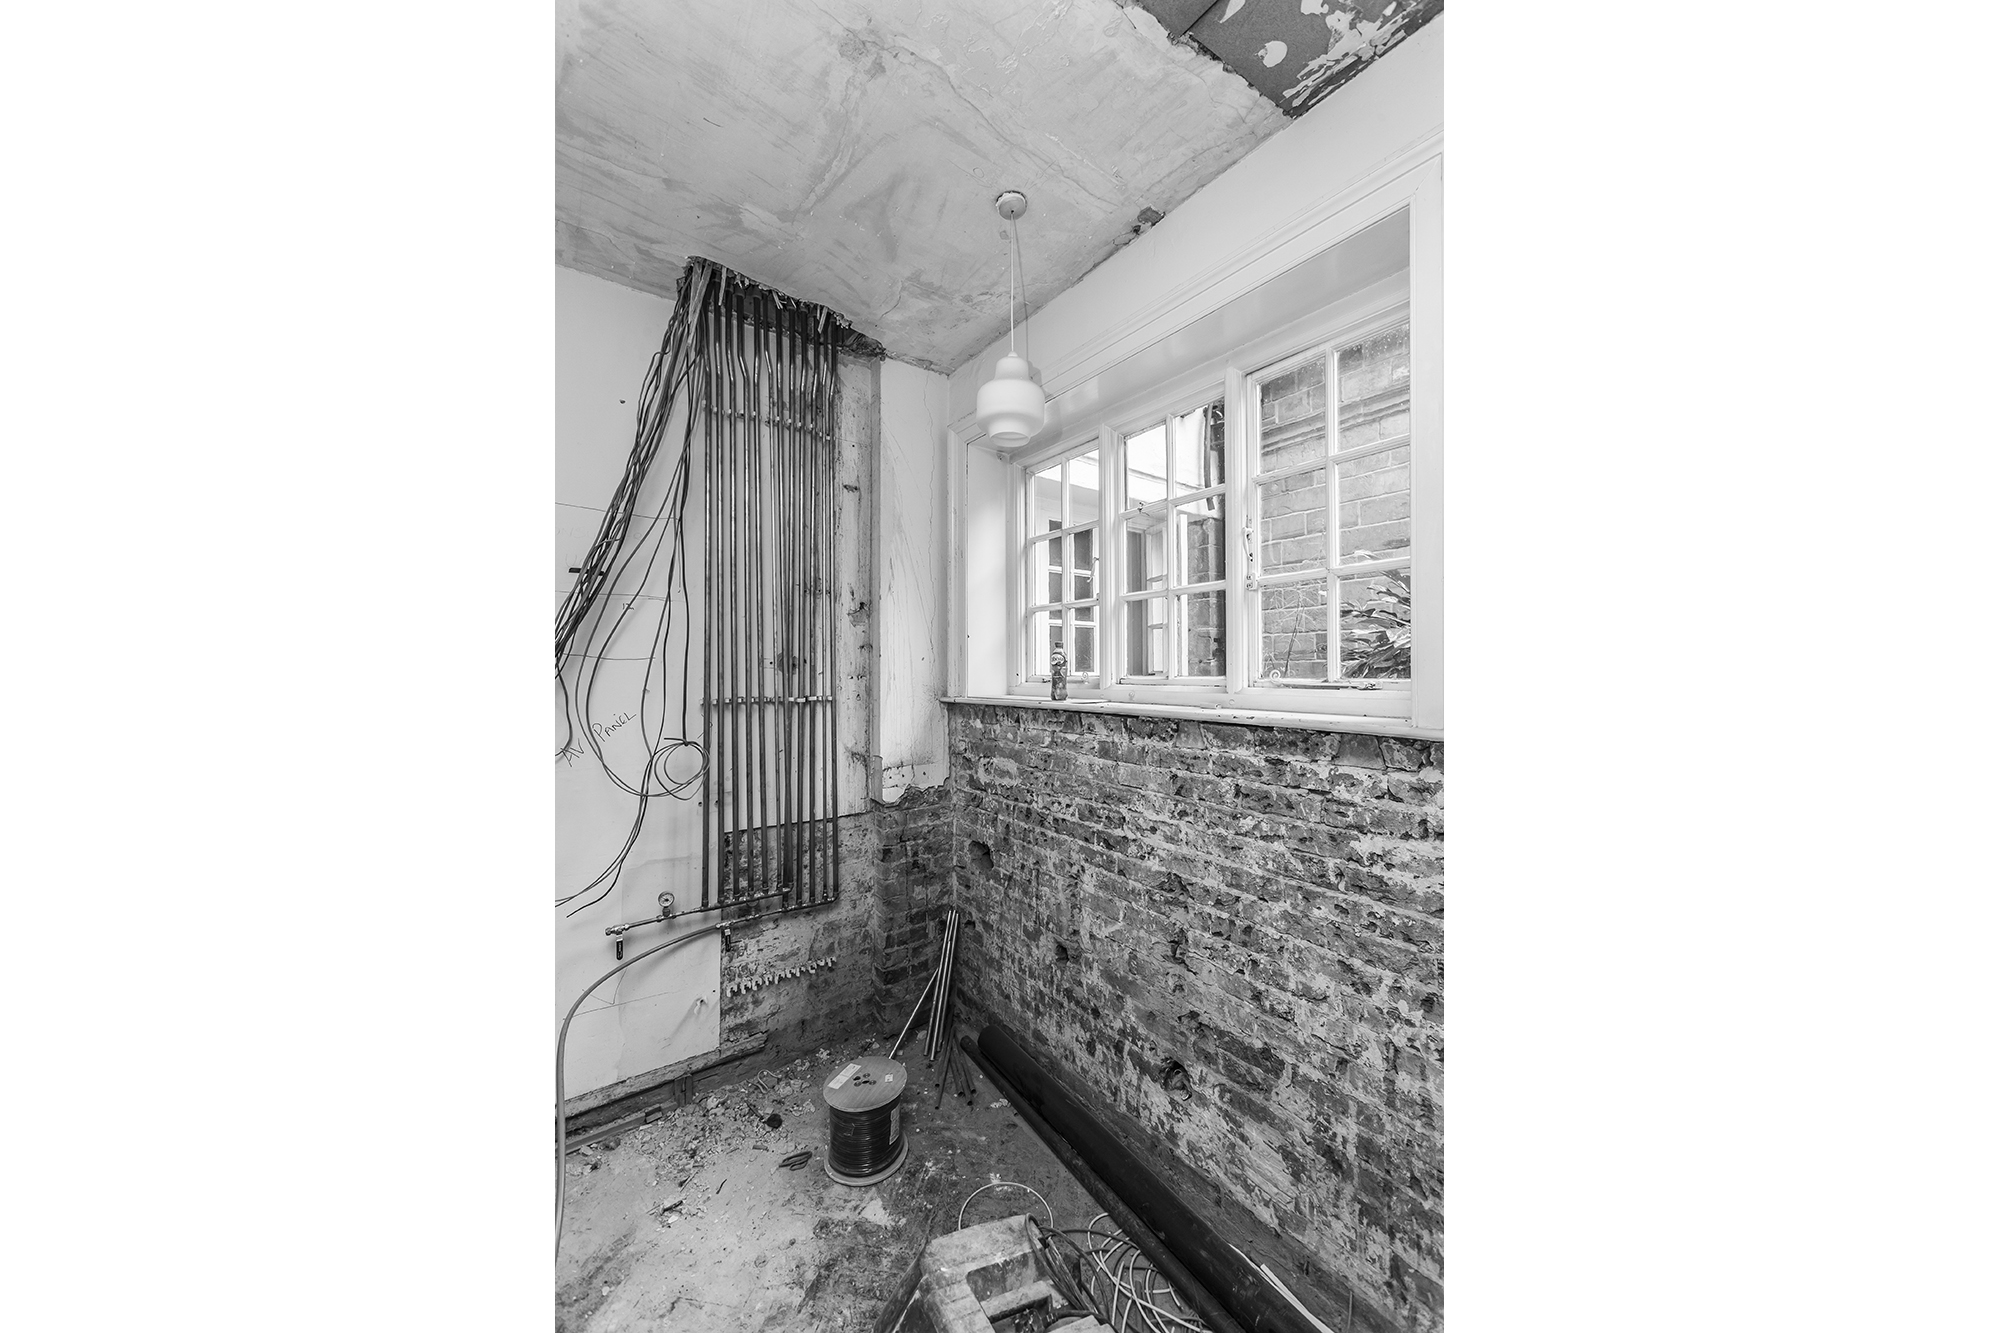 OldParkHouse_Construction_28.jpg